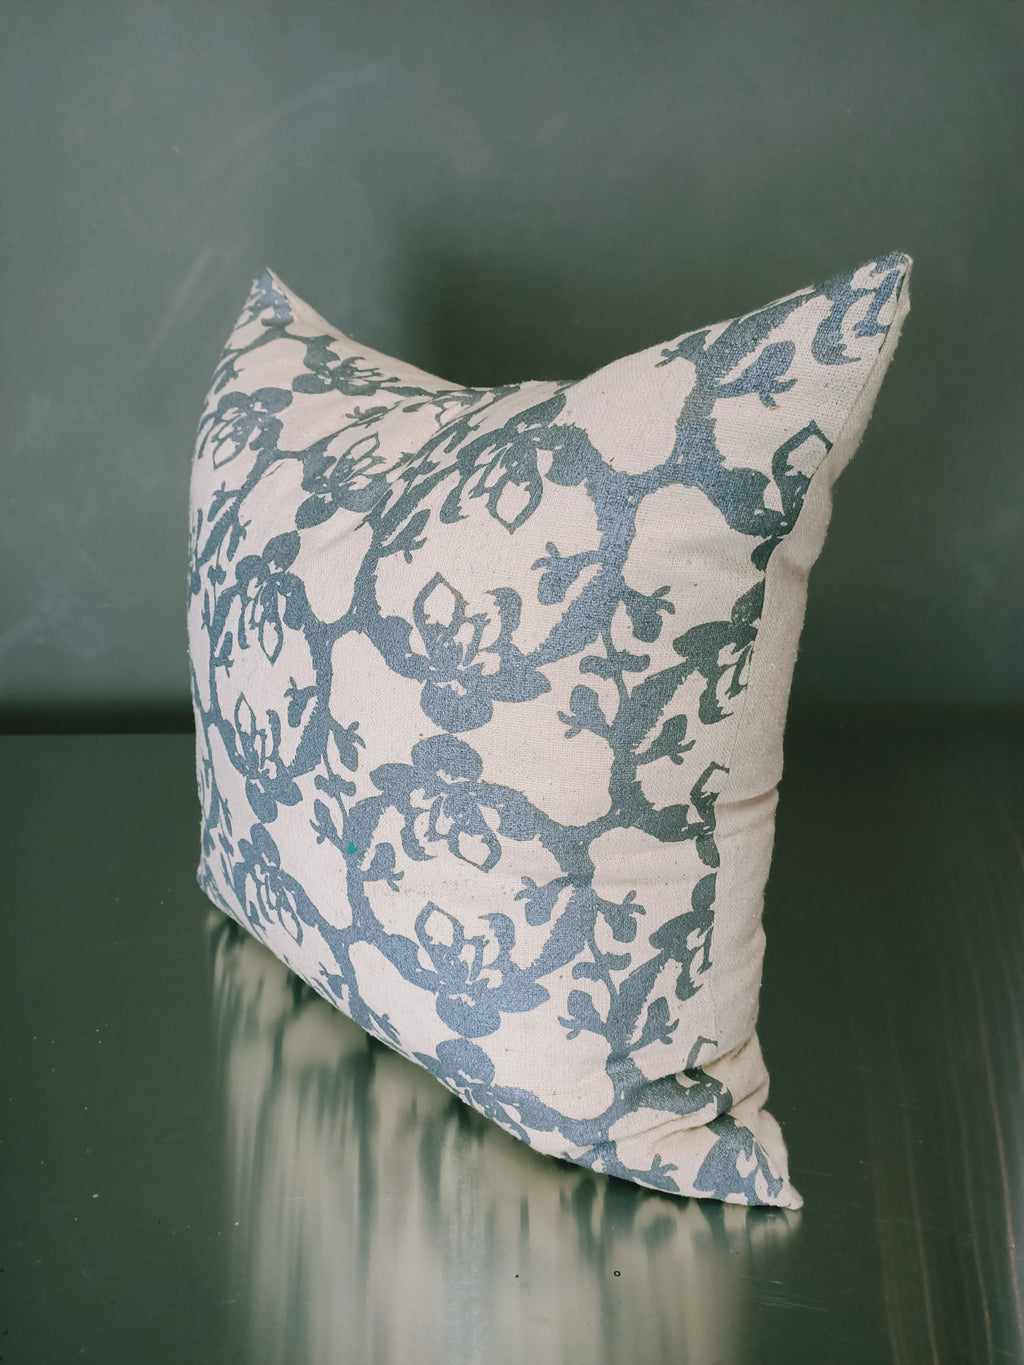 Cream & light blue patterned cushion